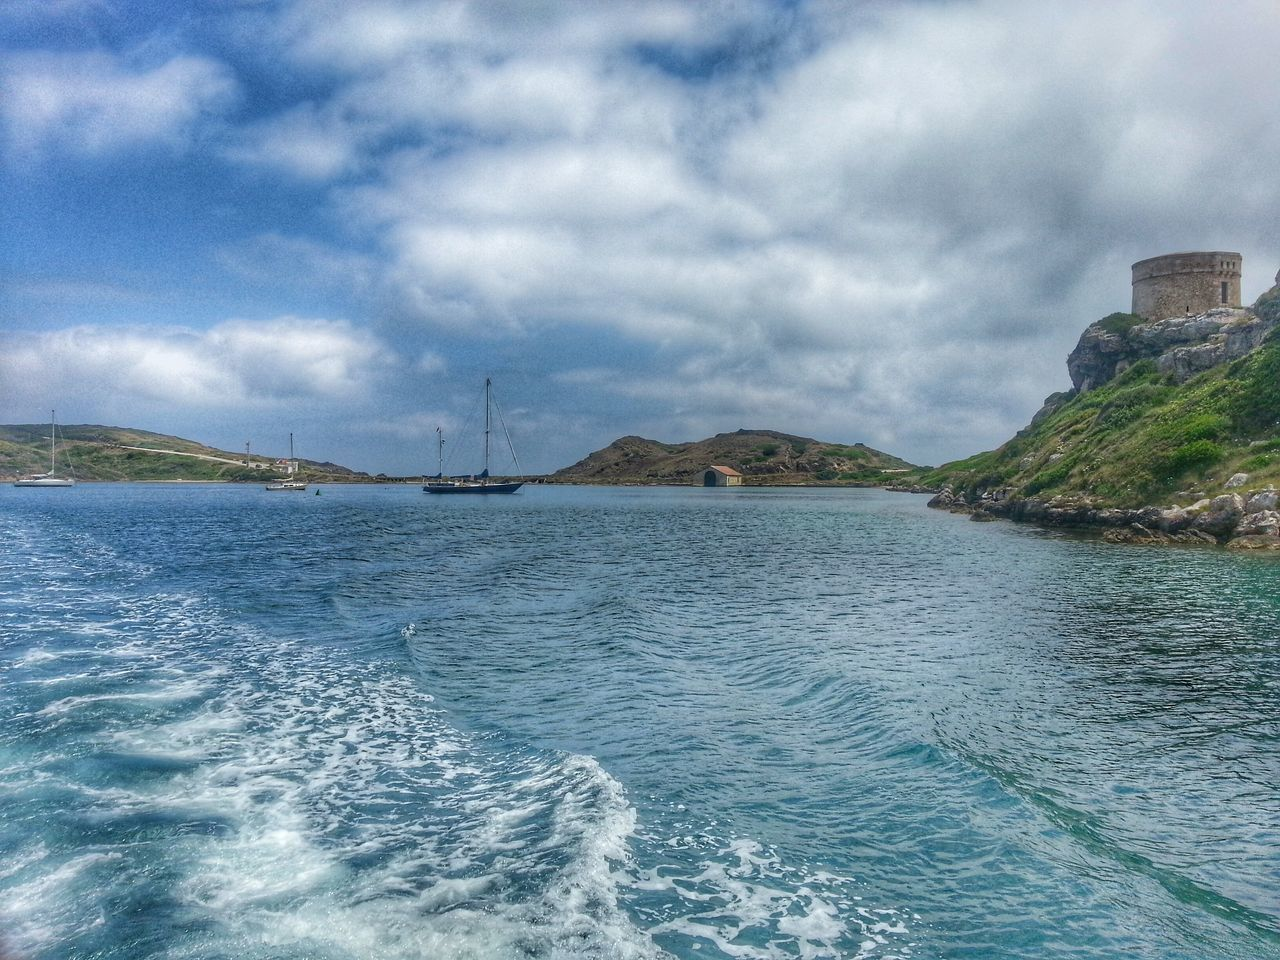 Landscape Seascape Blue Sky Seascape Photography Sea And Sky Seascape Waves Sky And Clouds Clouds And Sky Sky And Cloud Ruins Boat Waves Texture Mahón Mao Menorca Wanderlust Blue Sea Landscapes With WhiteWall Photography In Motion Blue Wave Feel The Journey